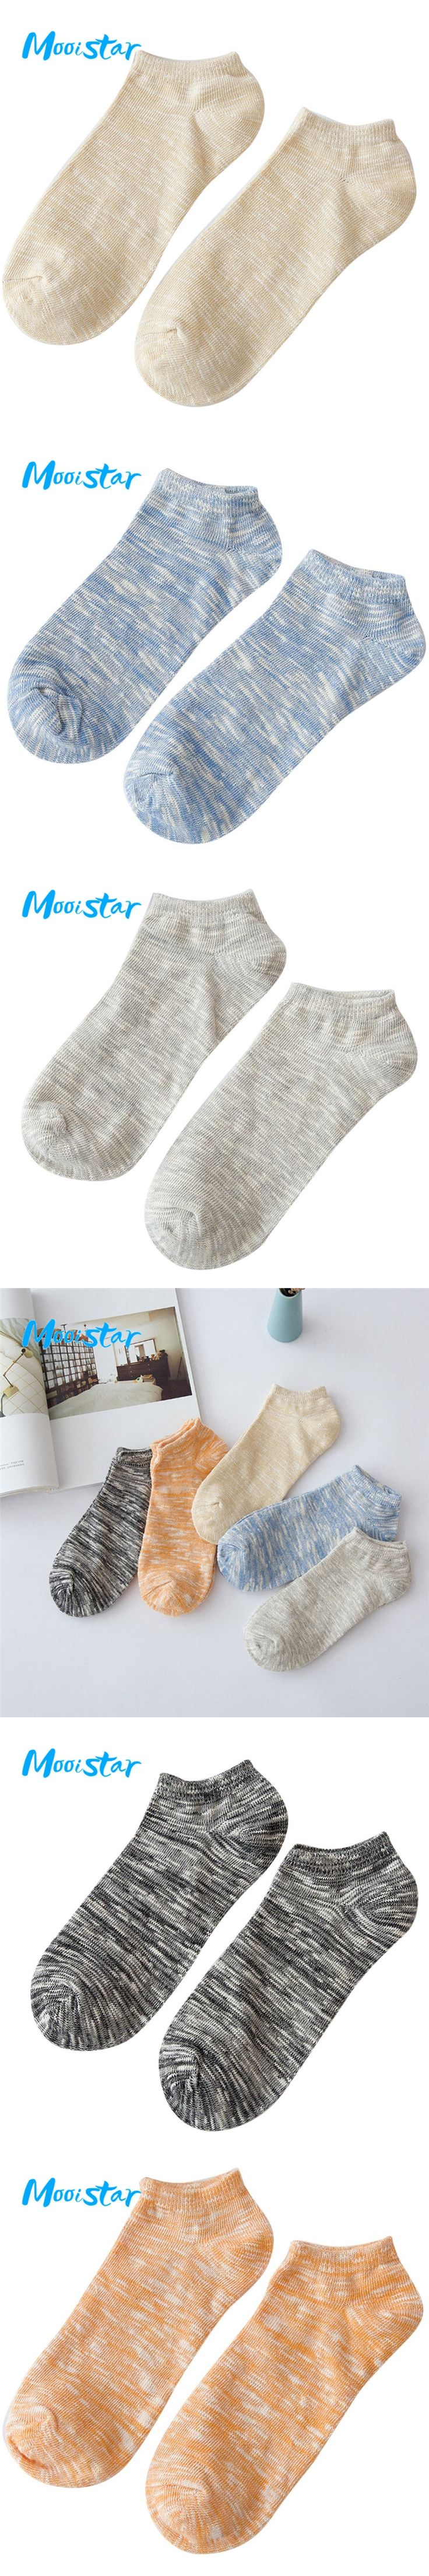 Mooistar #3066D# Men's Cotton Warm Socks Crew Ankle Low Cut Casual Business Classic Cotton Socks Free Shipping